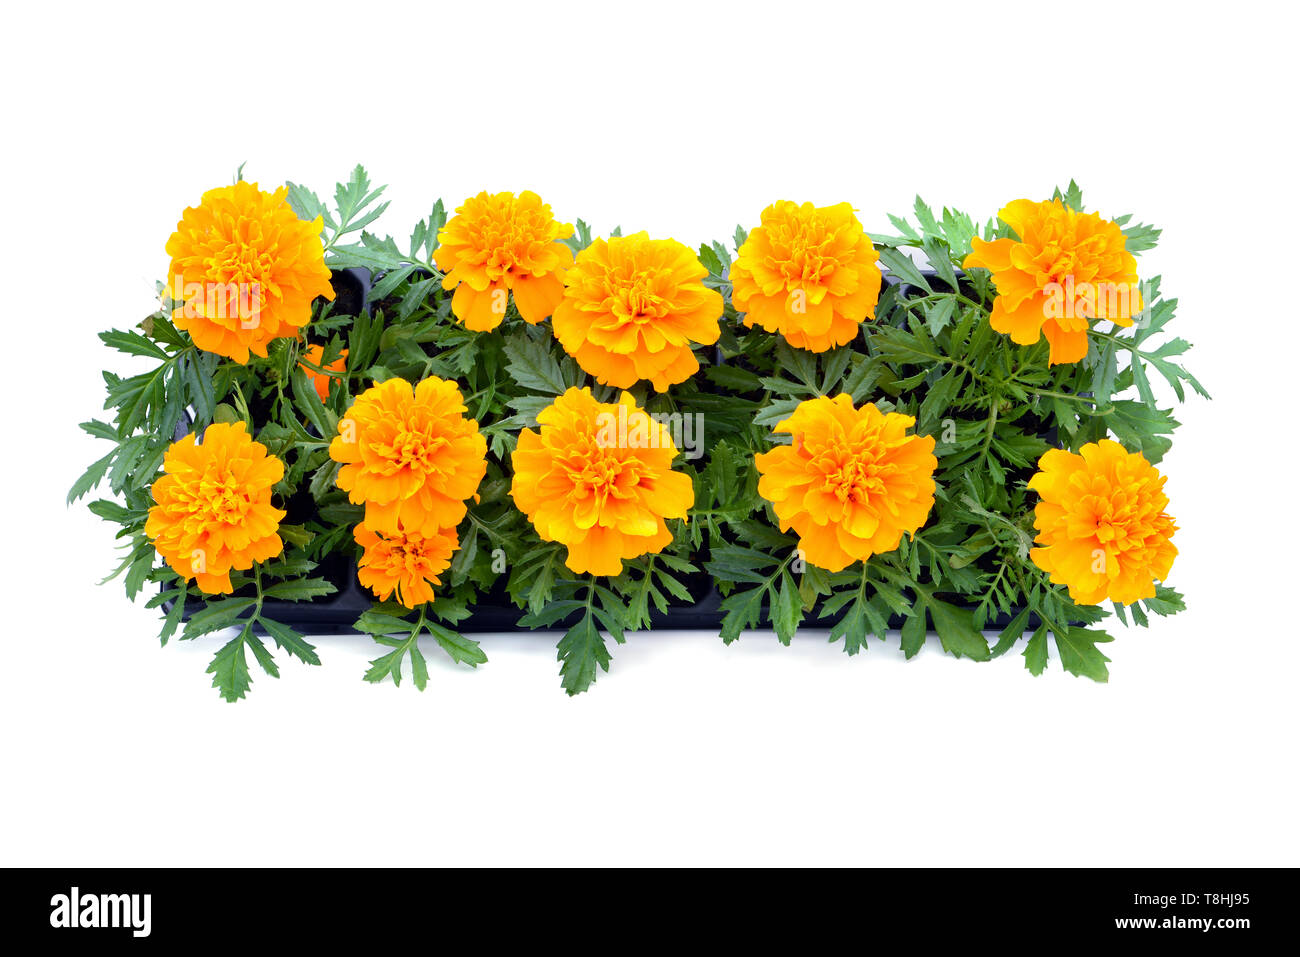 Tagetes flower tray box on white isolated background. top view. Stock Photo